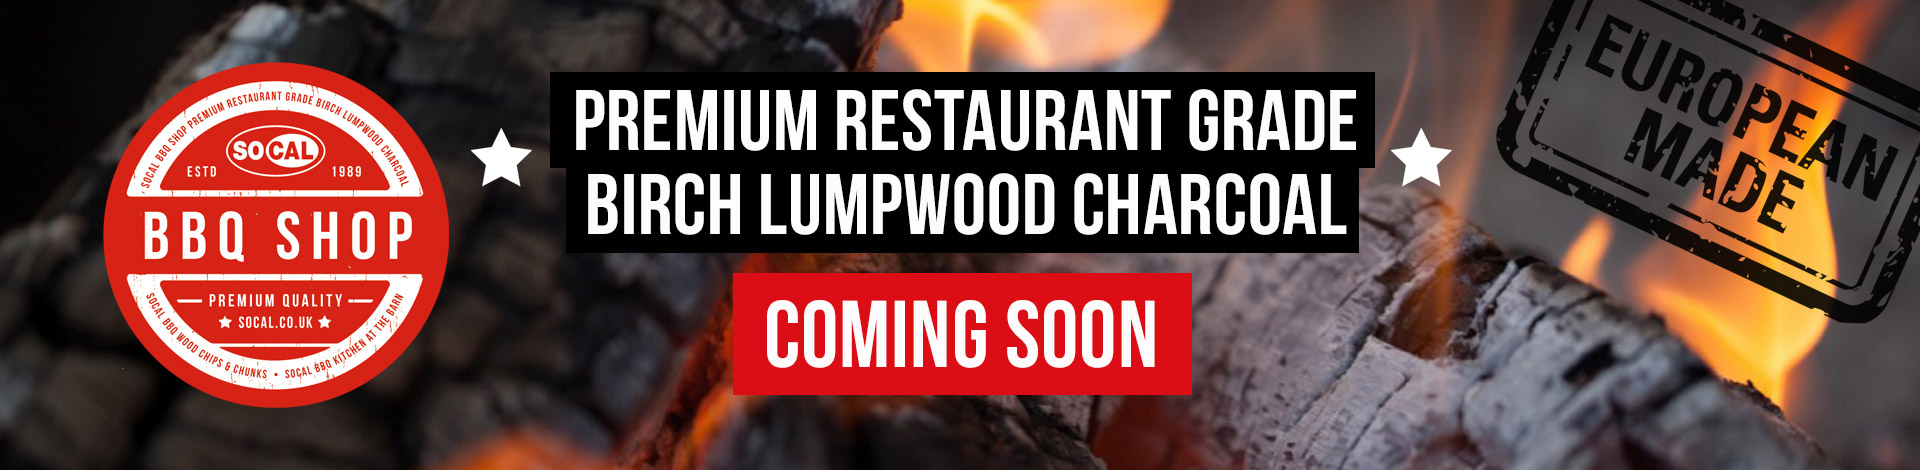 BBQ shop premium charcoal coming soon